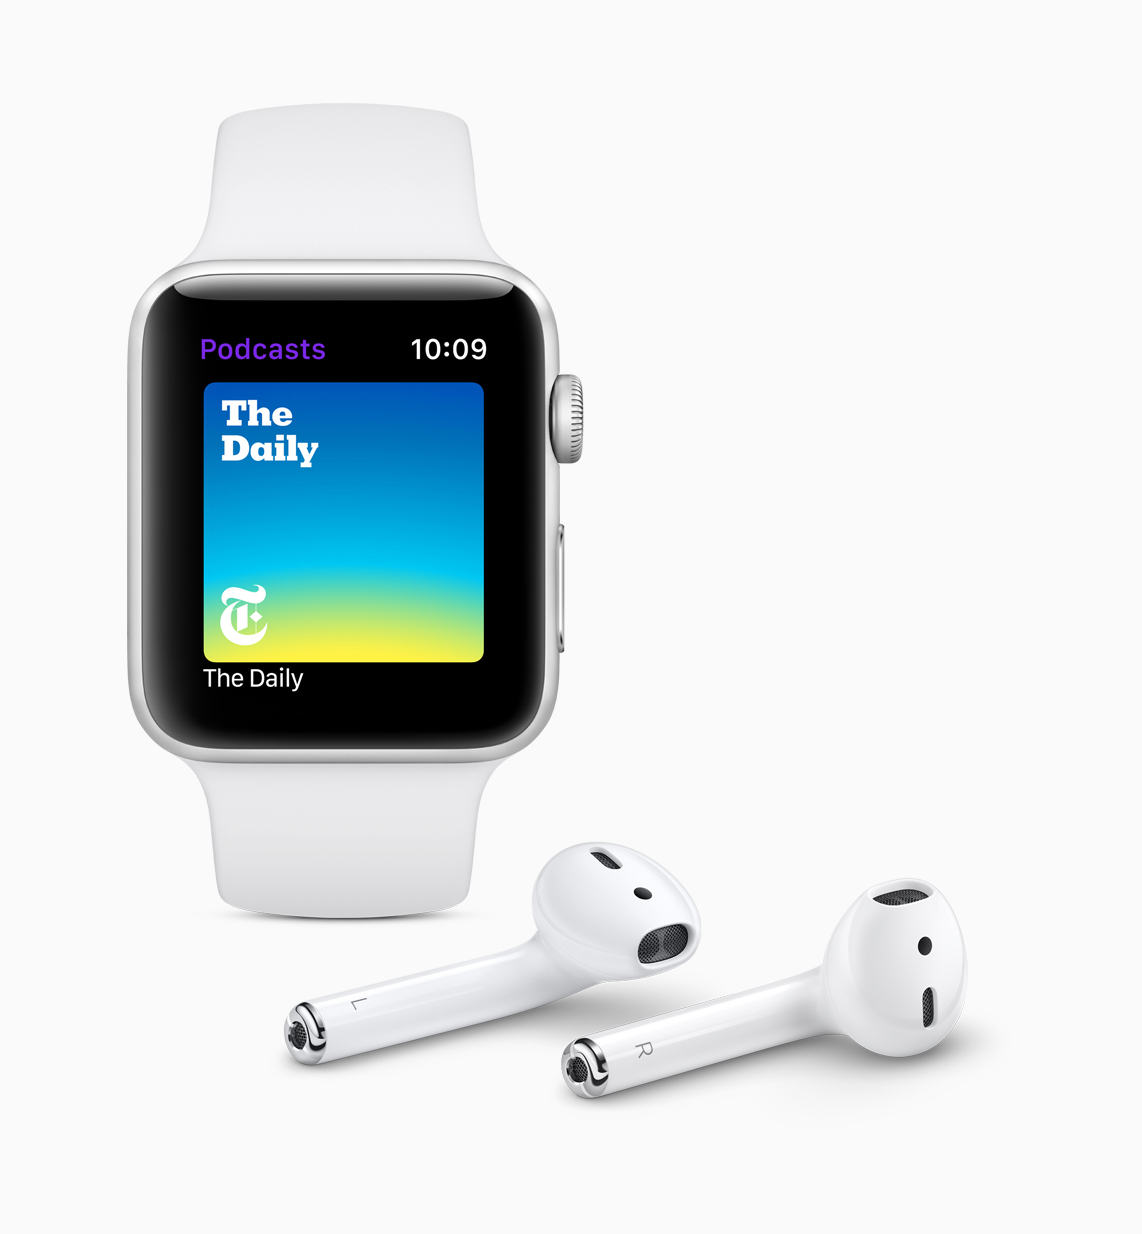 Apple watchOS 5 Podcasts screen 06042018